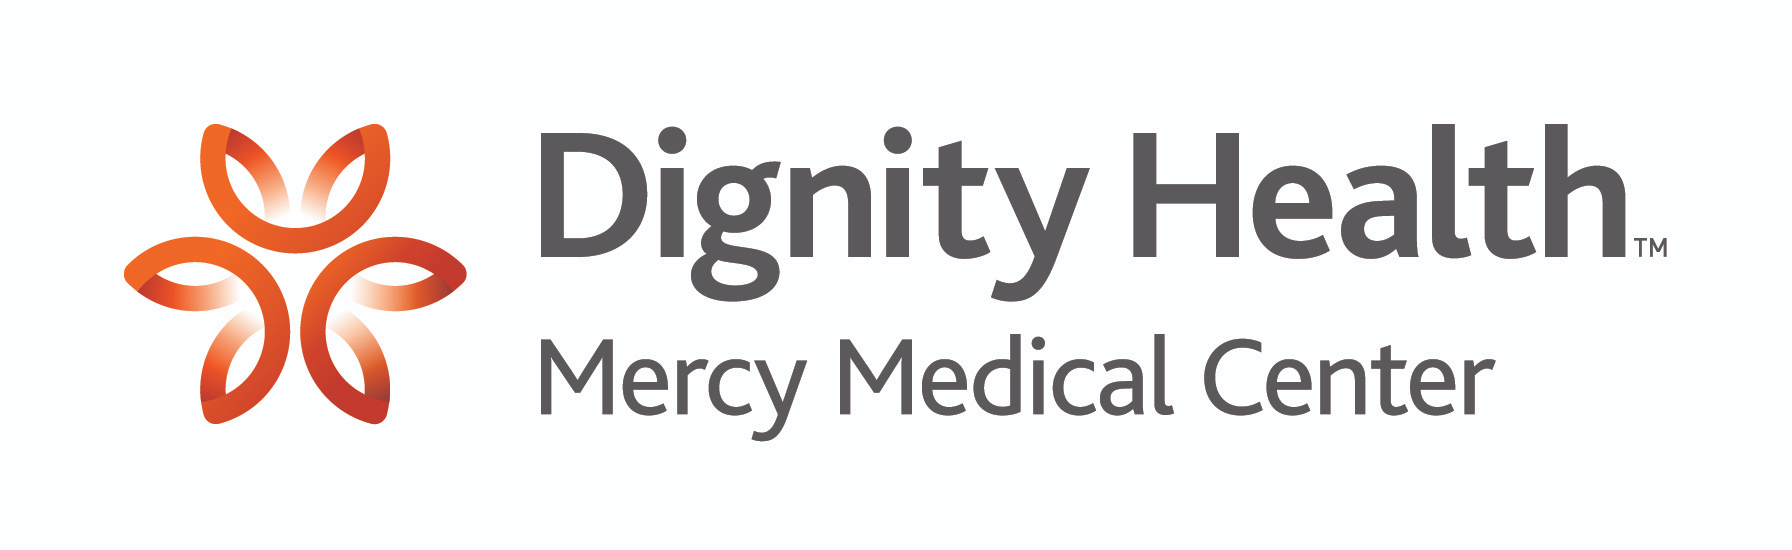 Dignity Health Mercy Medical Center Merced.jpg